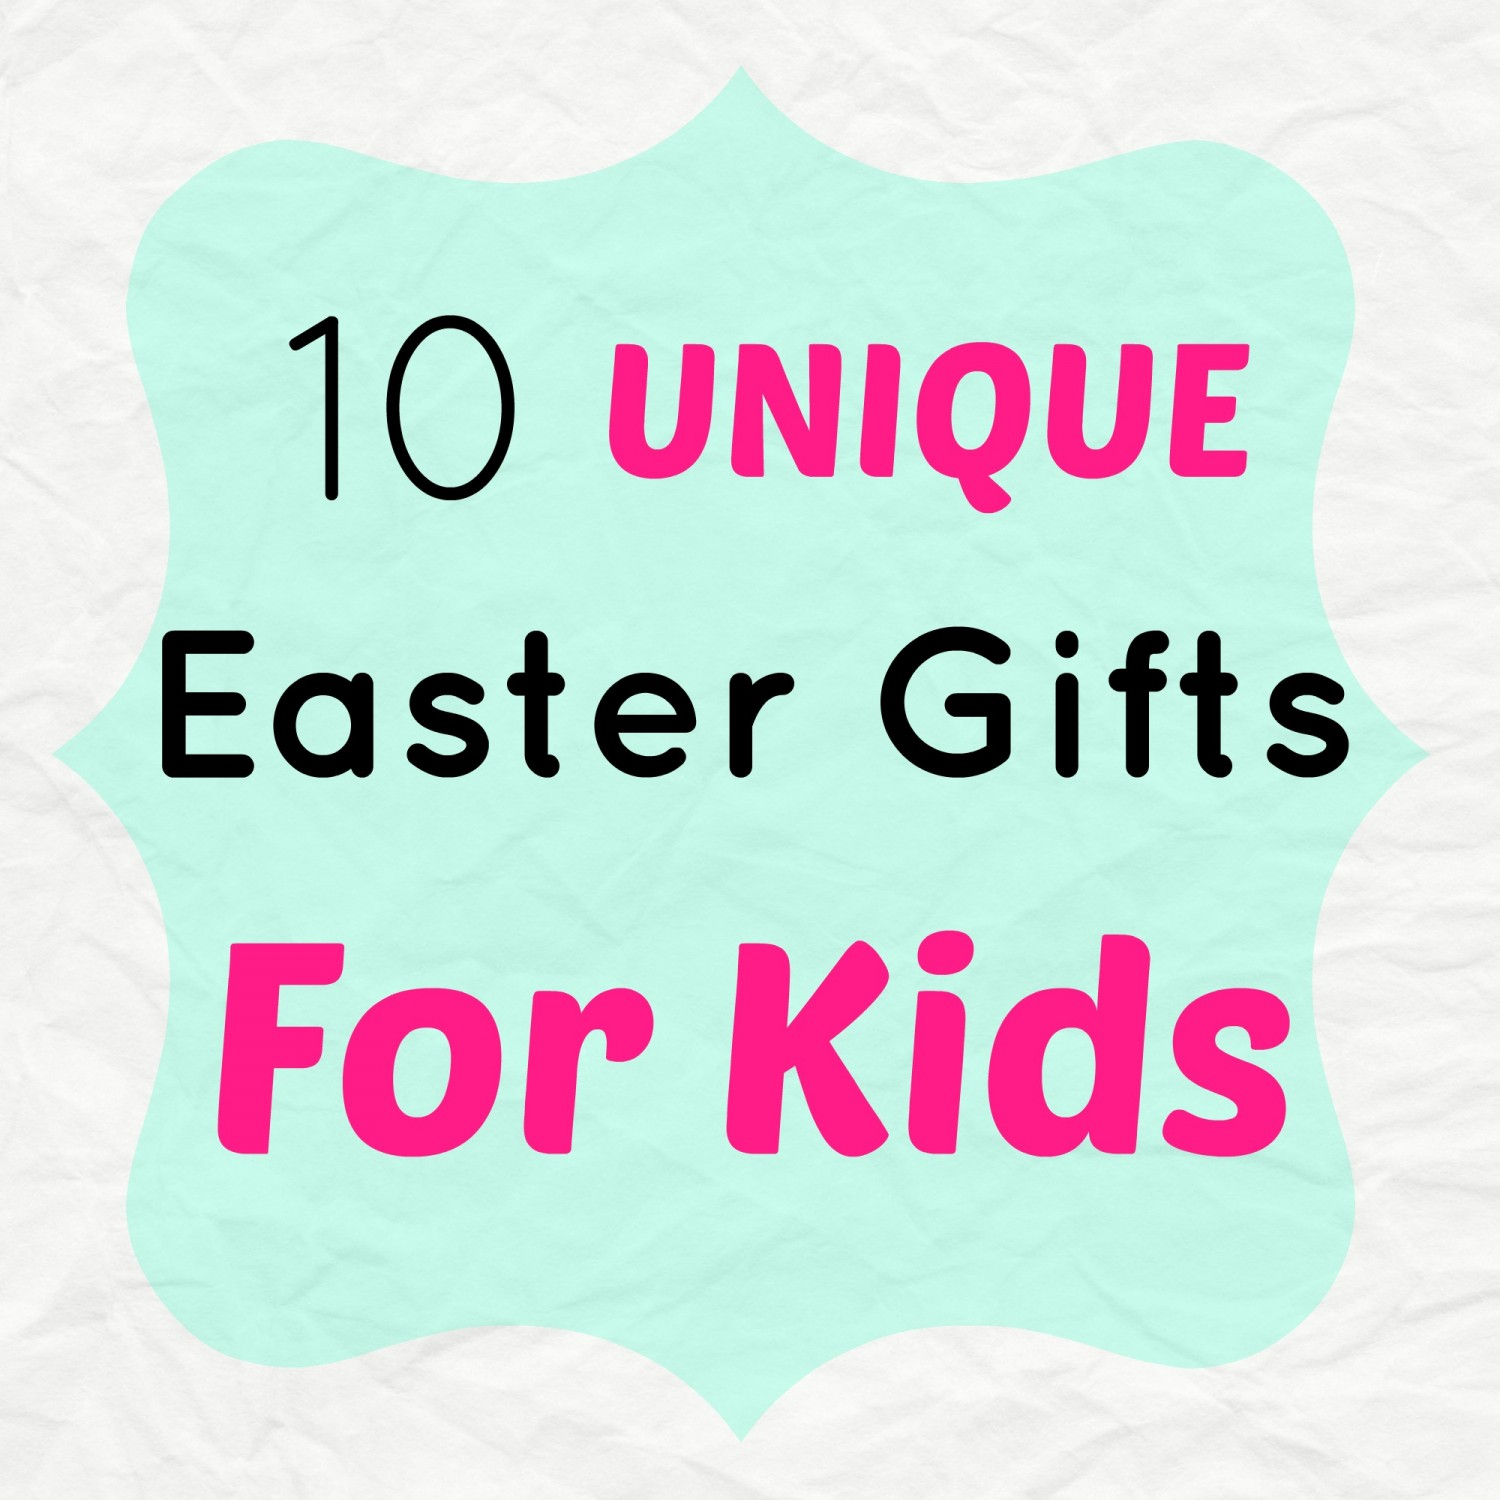 10 Unique Easter Gift Ideas for Kids